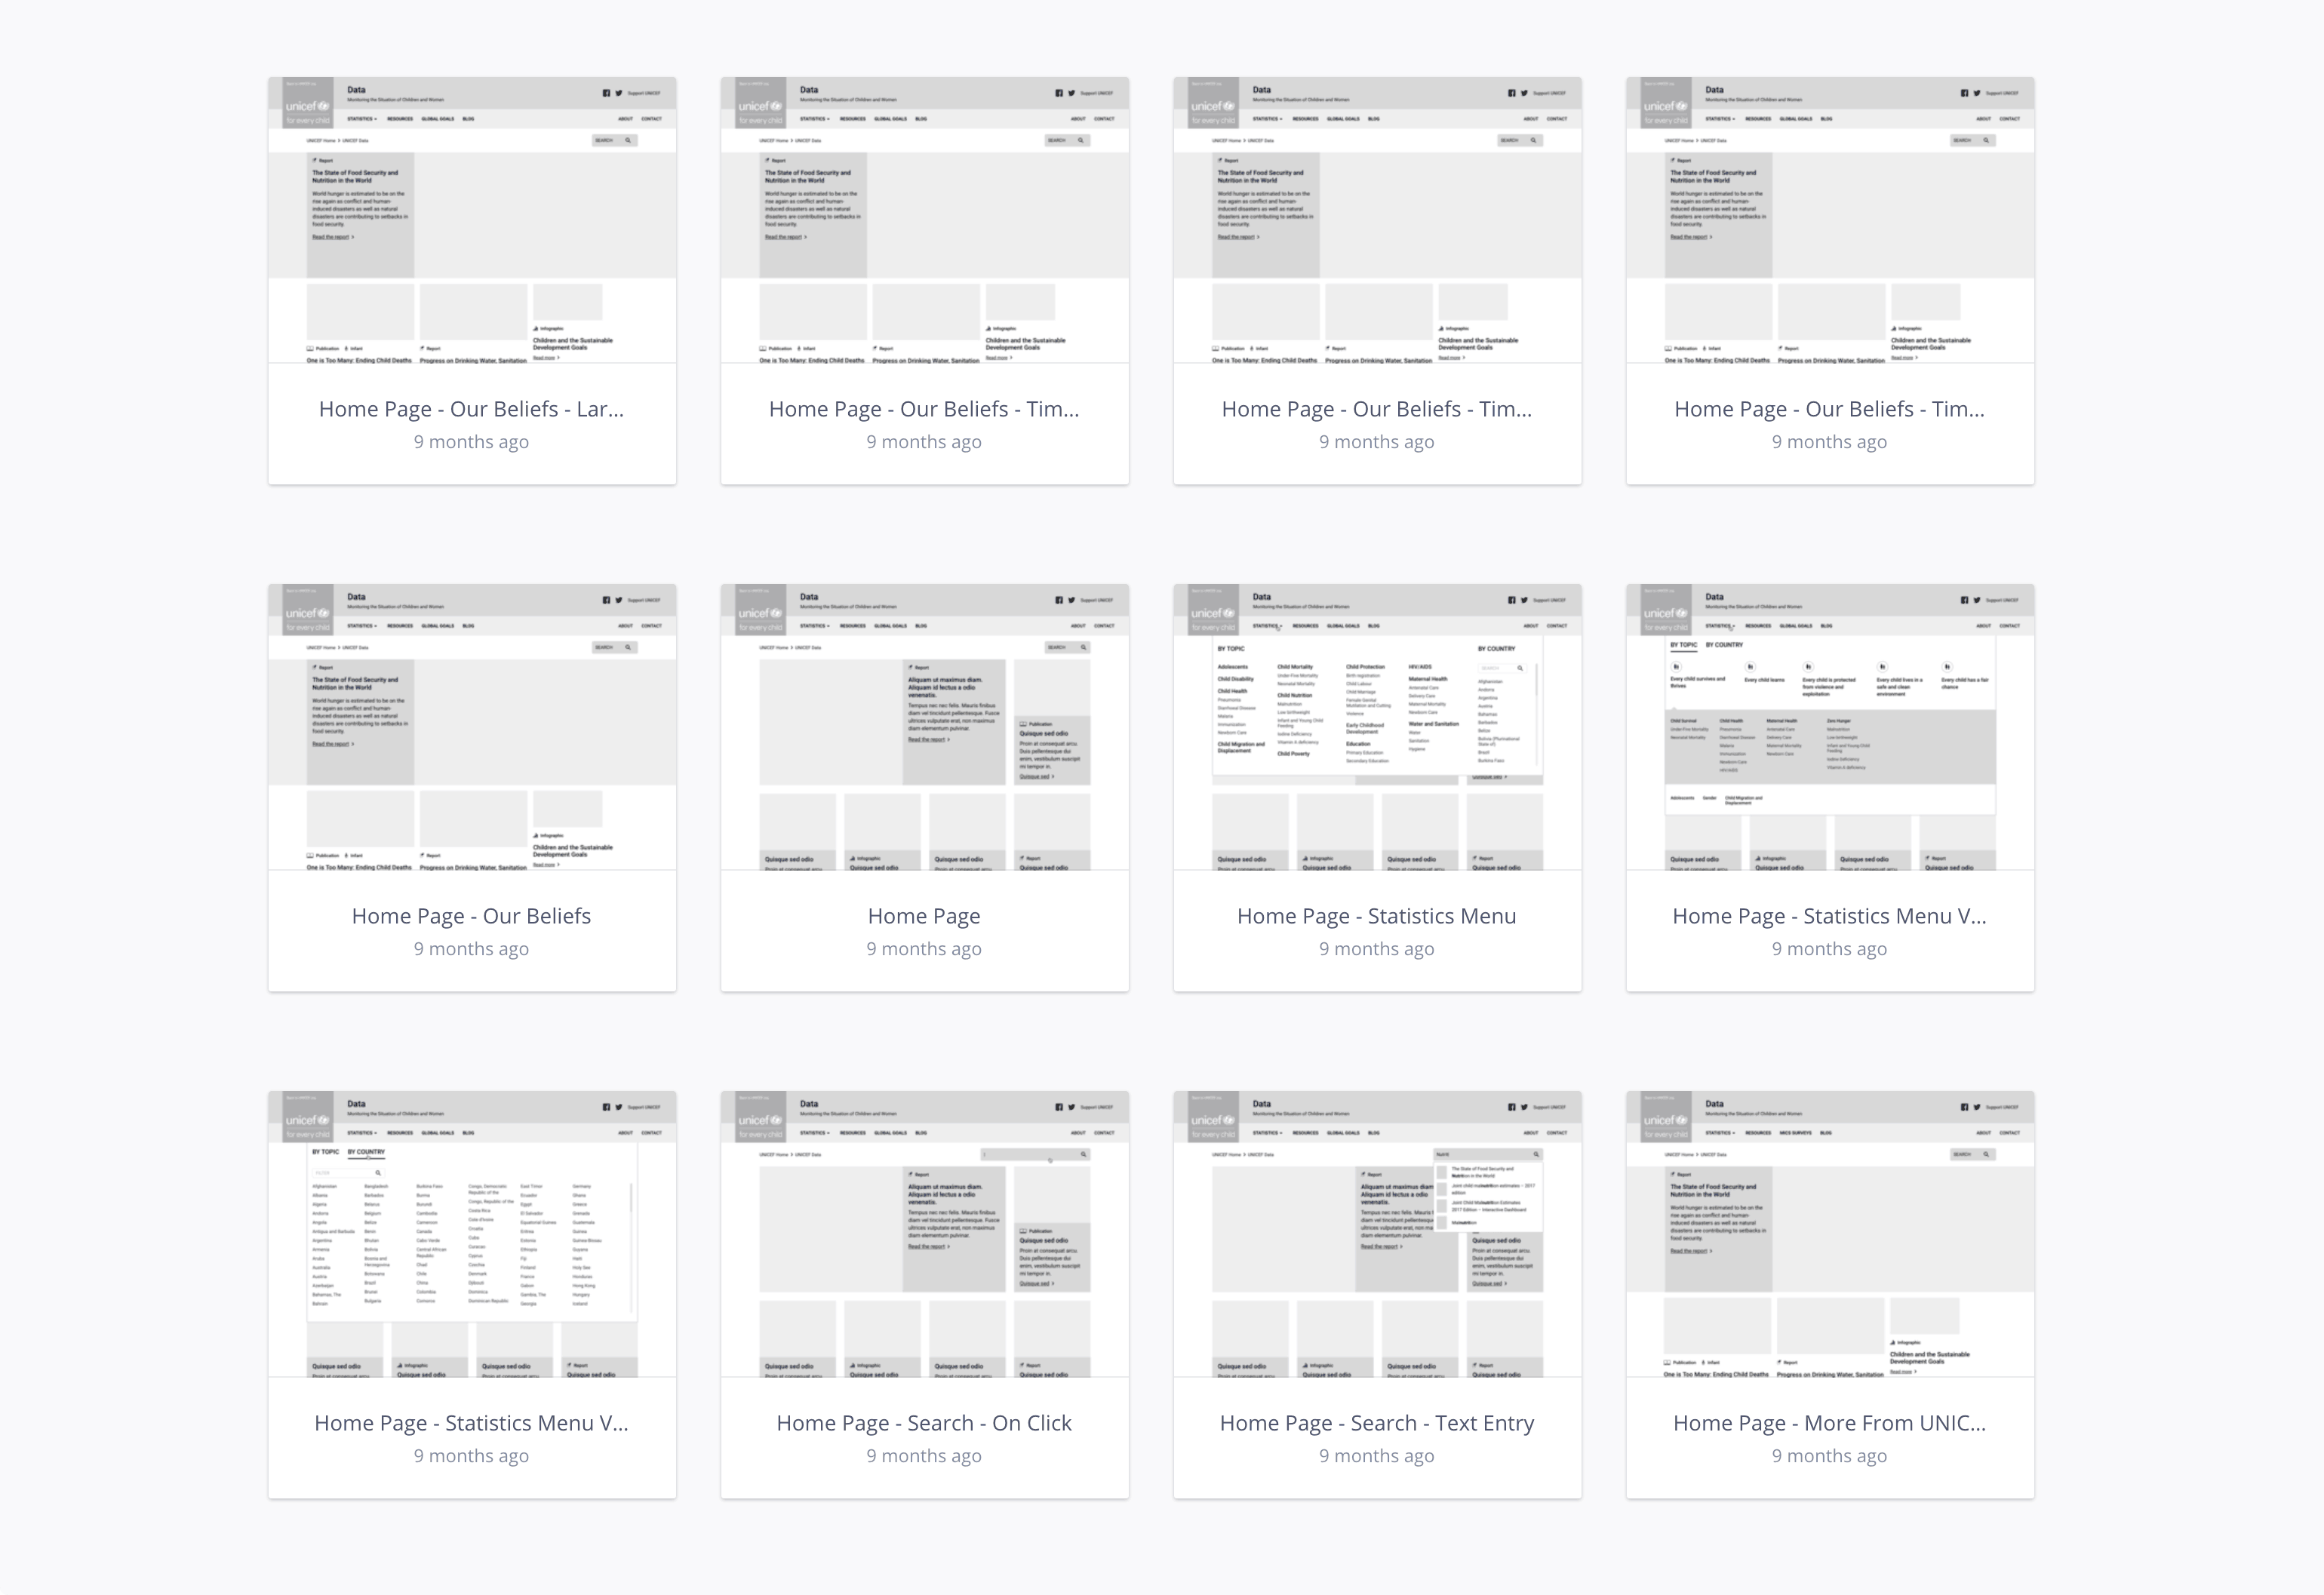 screenshots of UNICEF wireframes